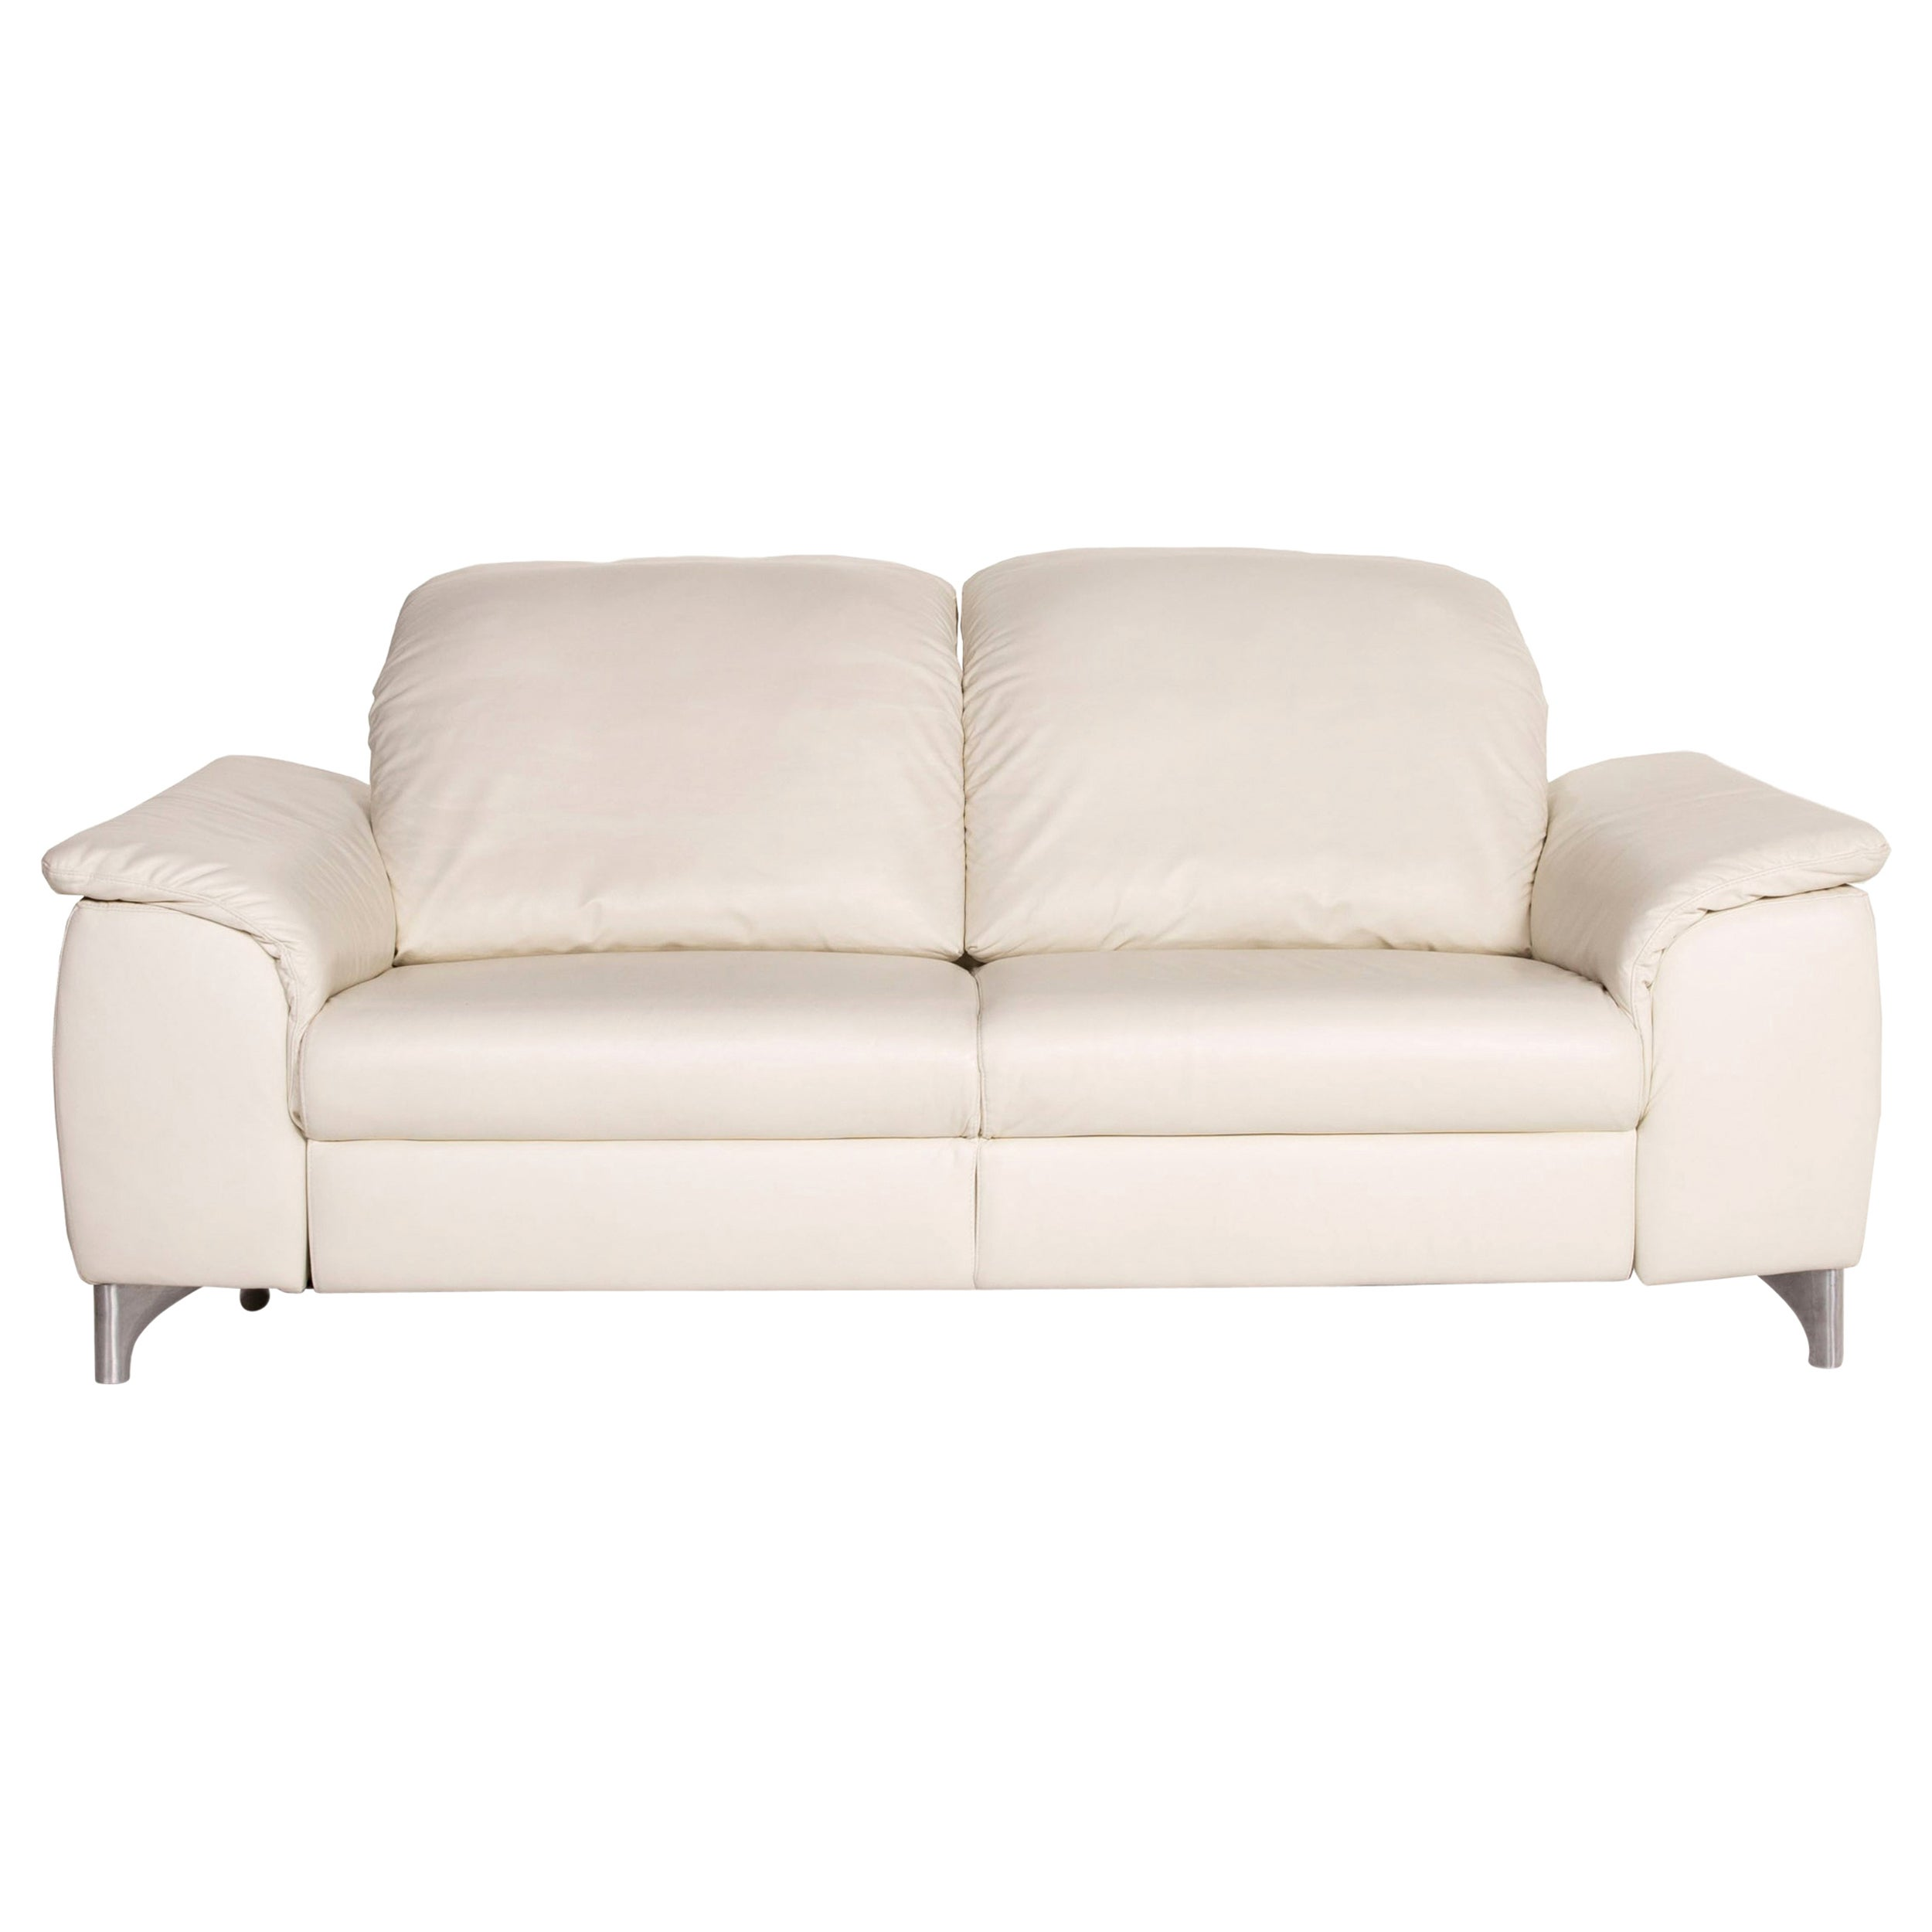 Willi Schillig Sinaatra Leather Sofa White Two-Seater Function Couch